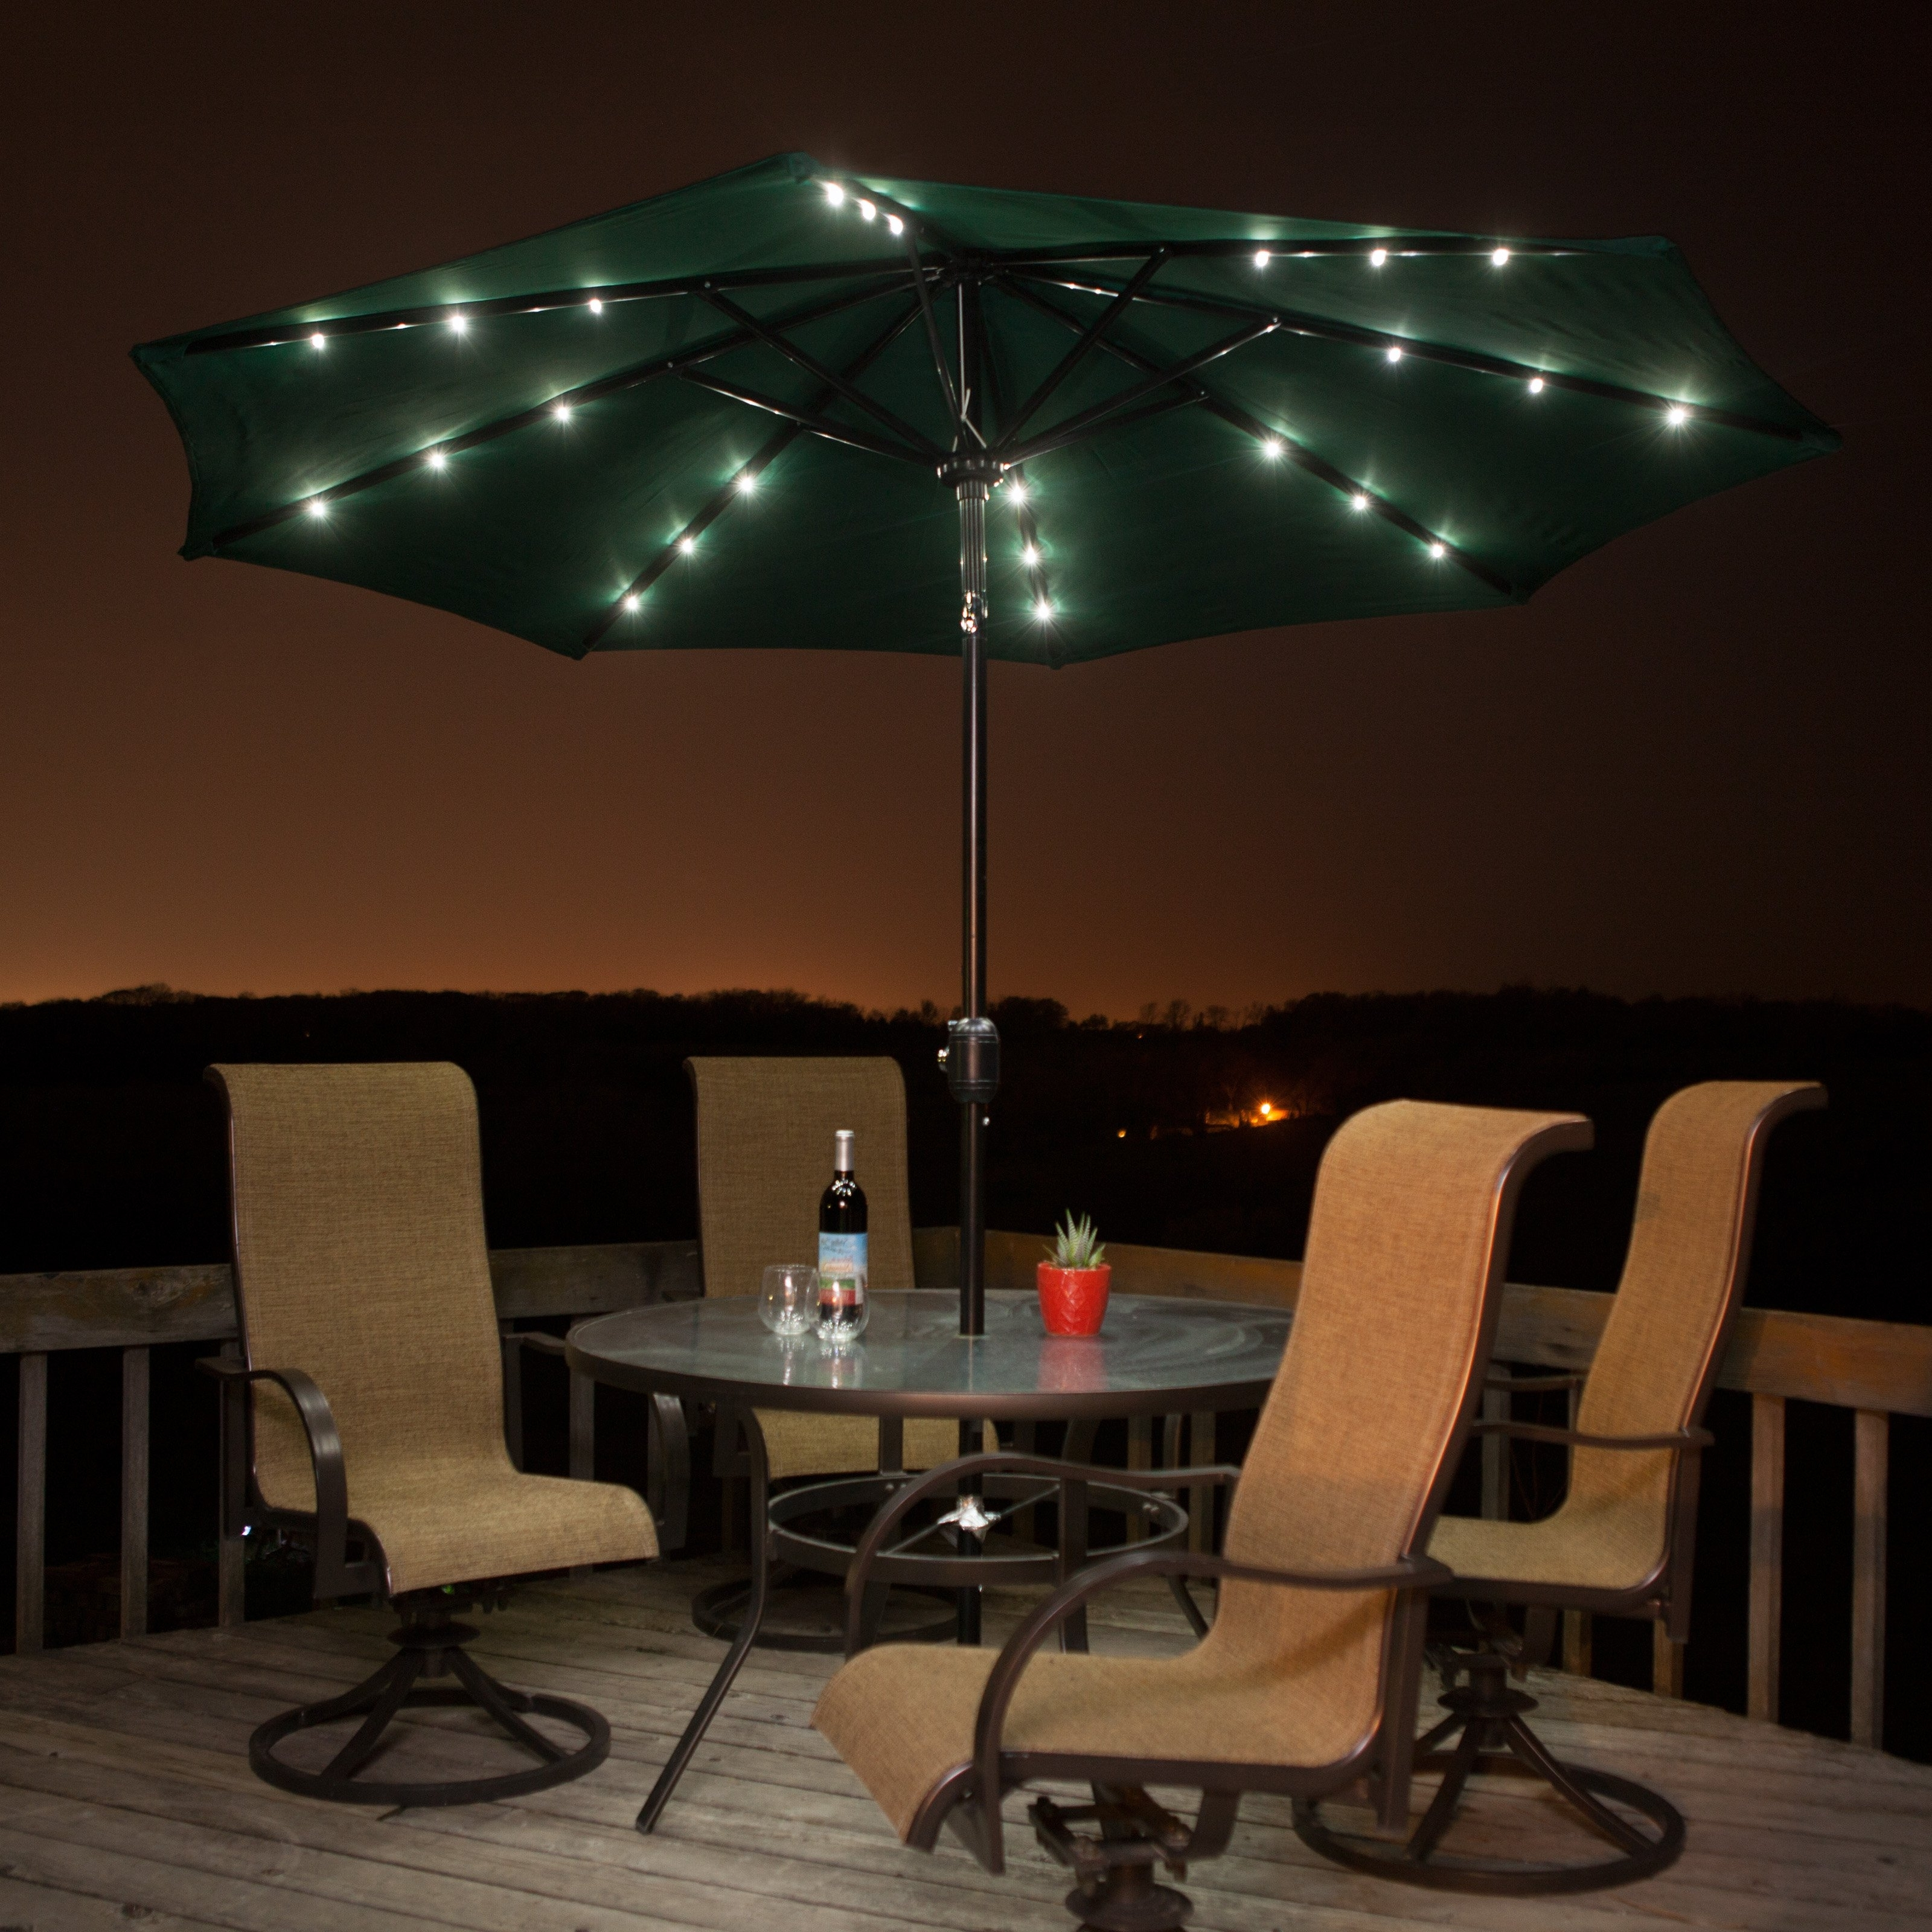 Best And Newest Lighted Patio Umbrellas Throughout Lighted Patio Umbrellas — Mistikcamping Home Design : Different (View 3 of 20)